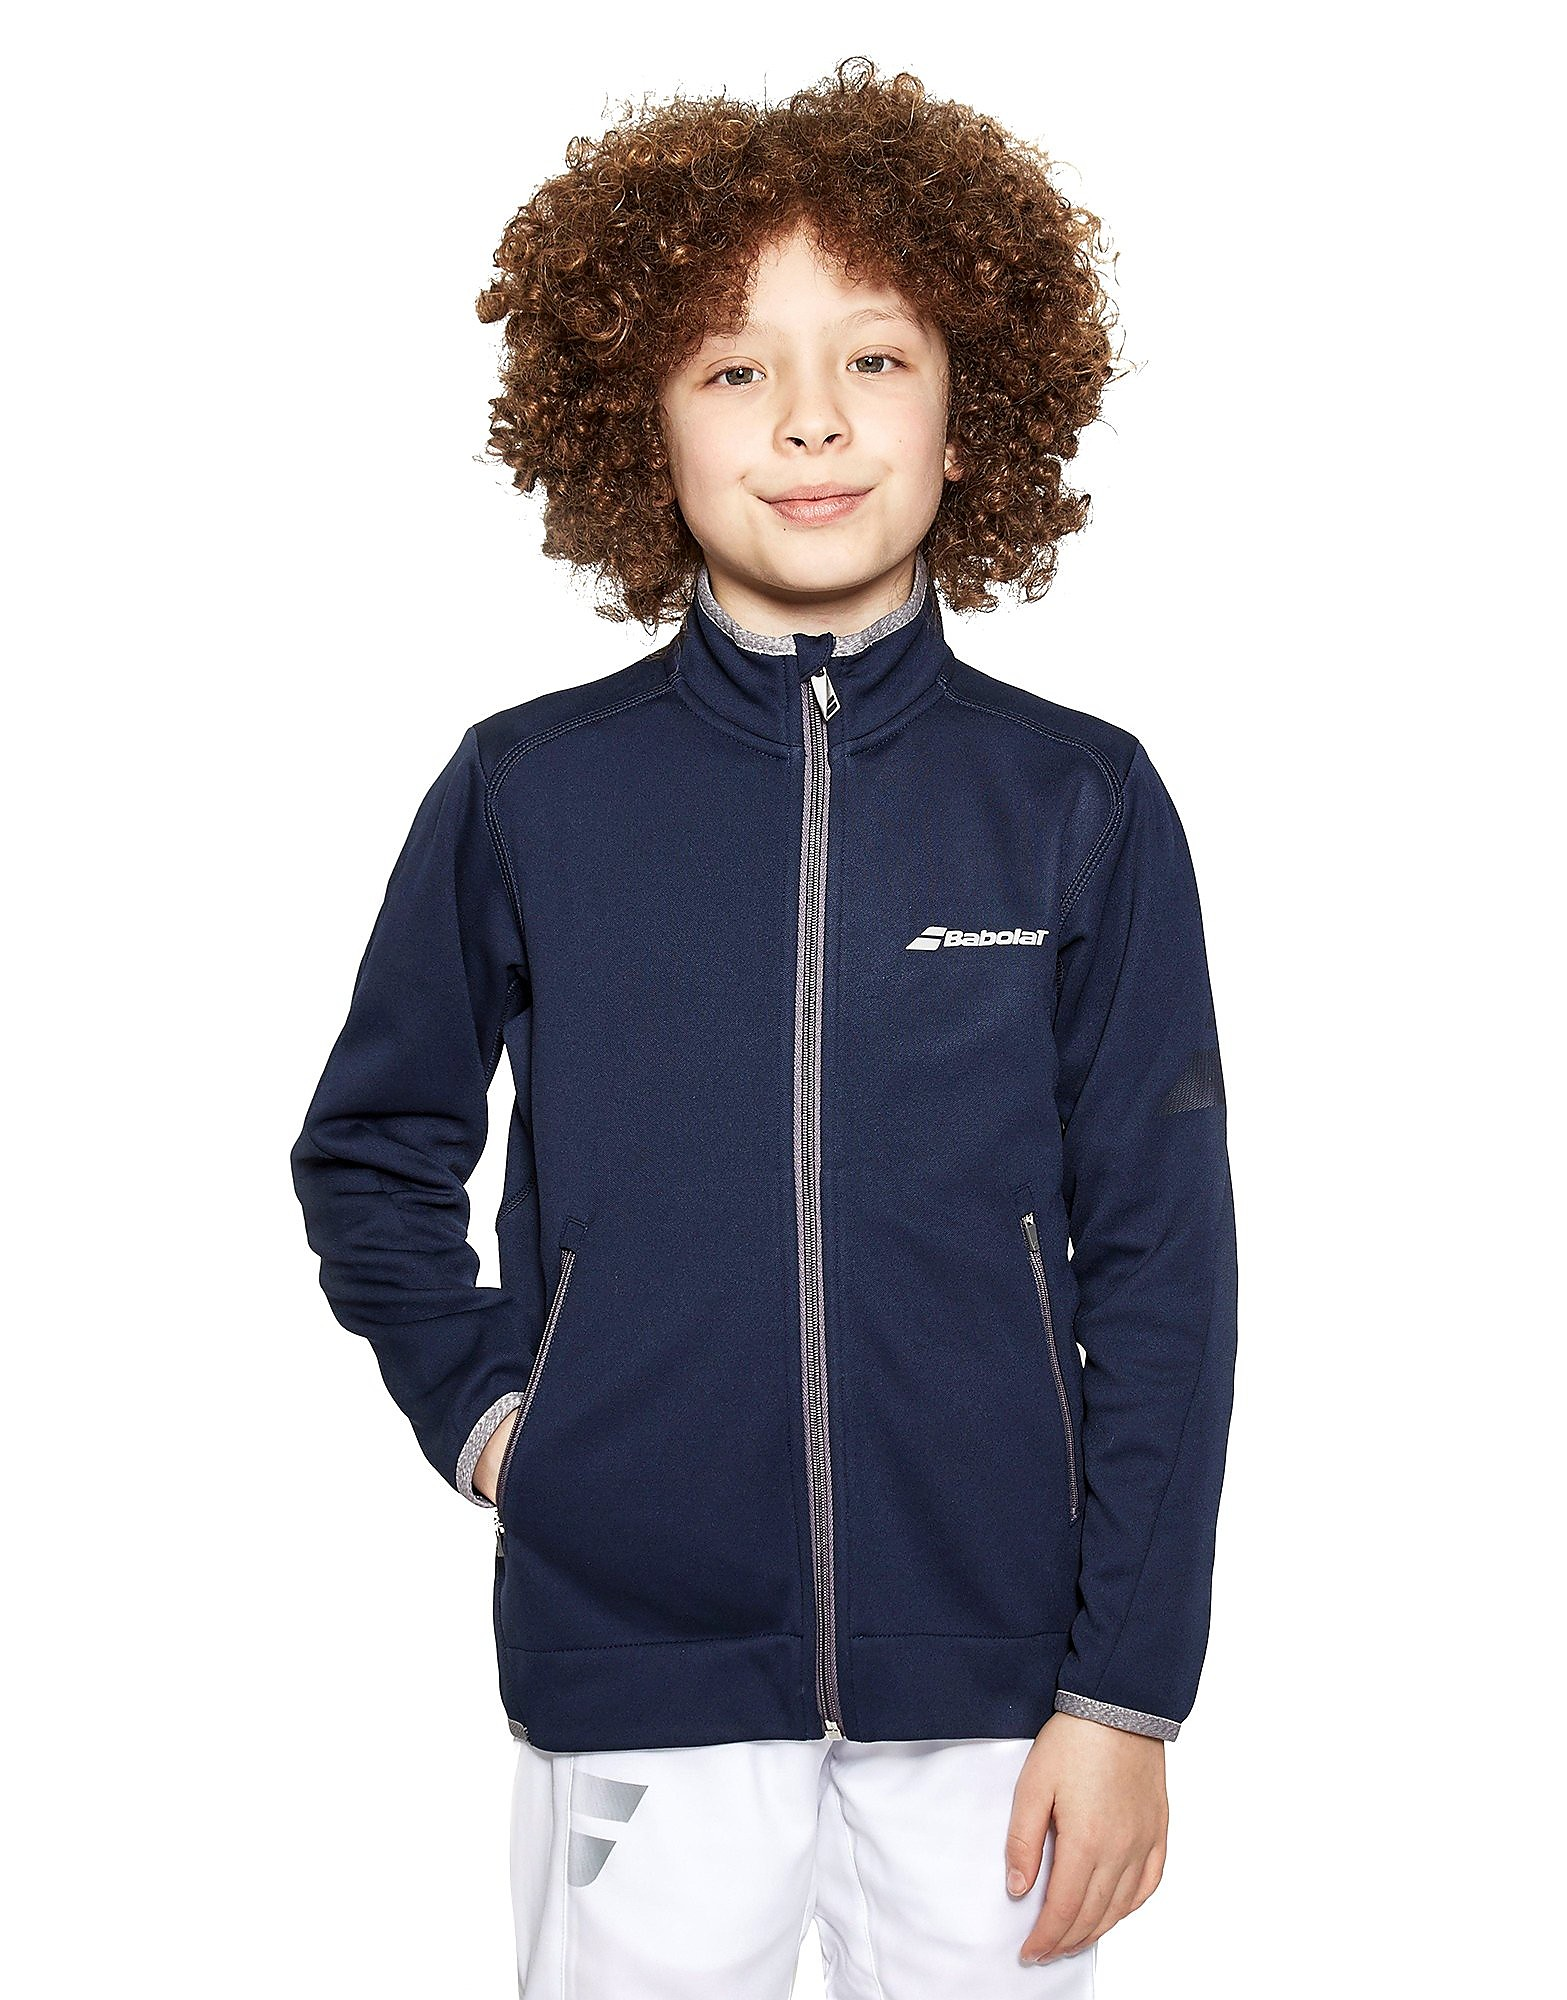 Babolat Performance Jacket Junior